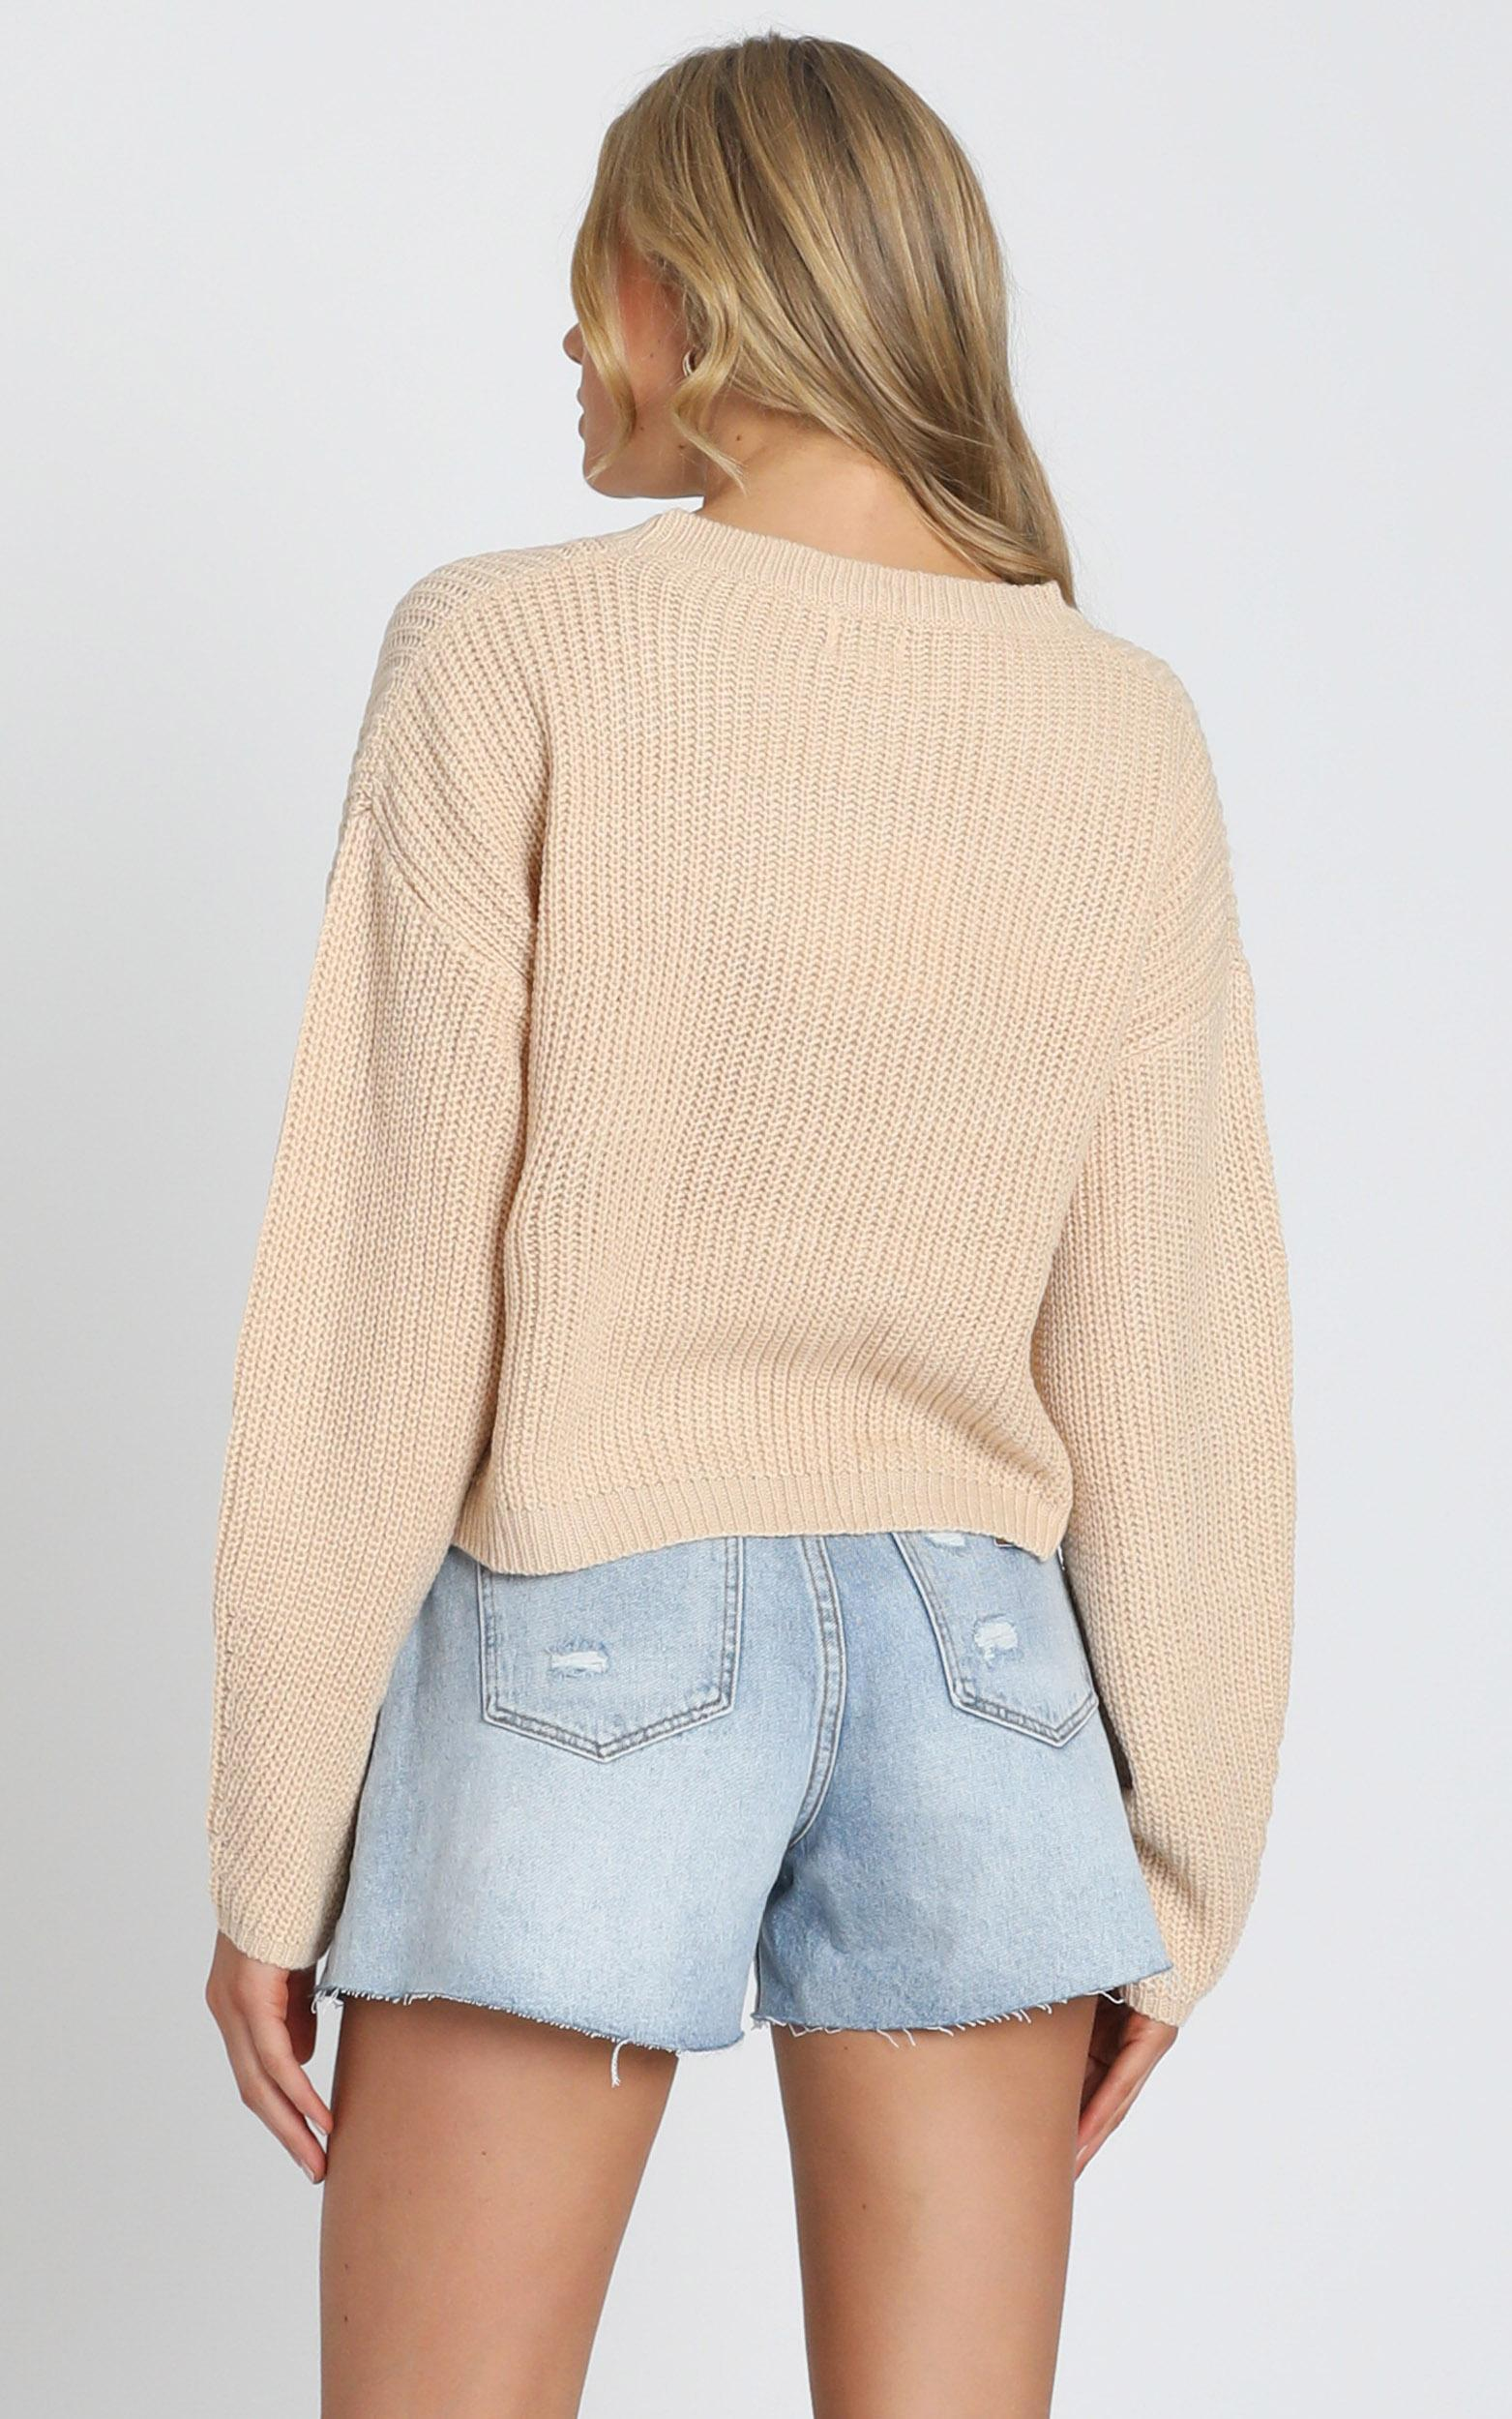 Frankie Cropped Boxy Knit in Mocha - S/M, Mocha, hi-res image number null